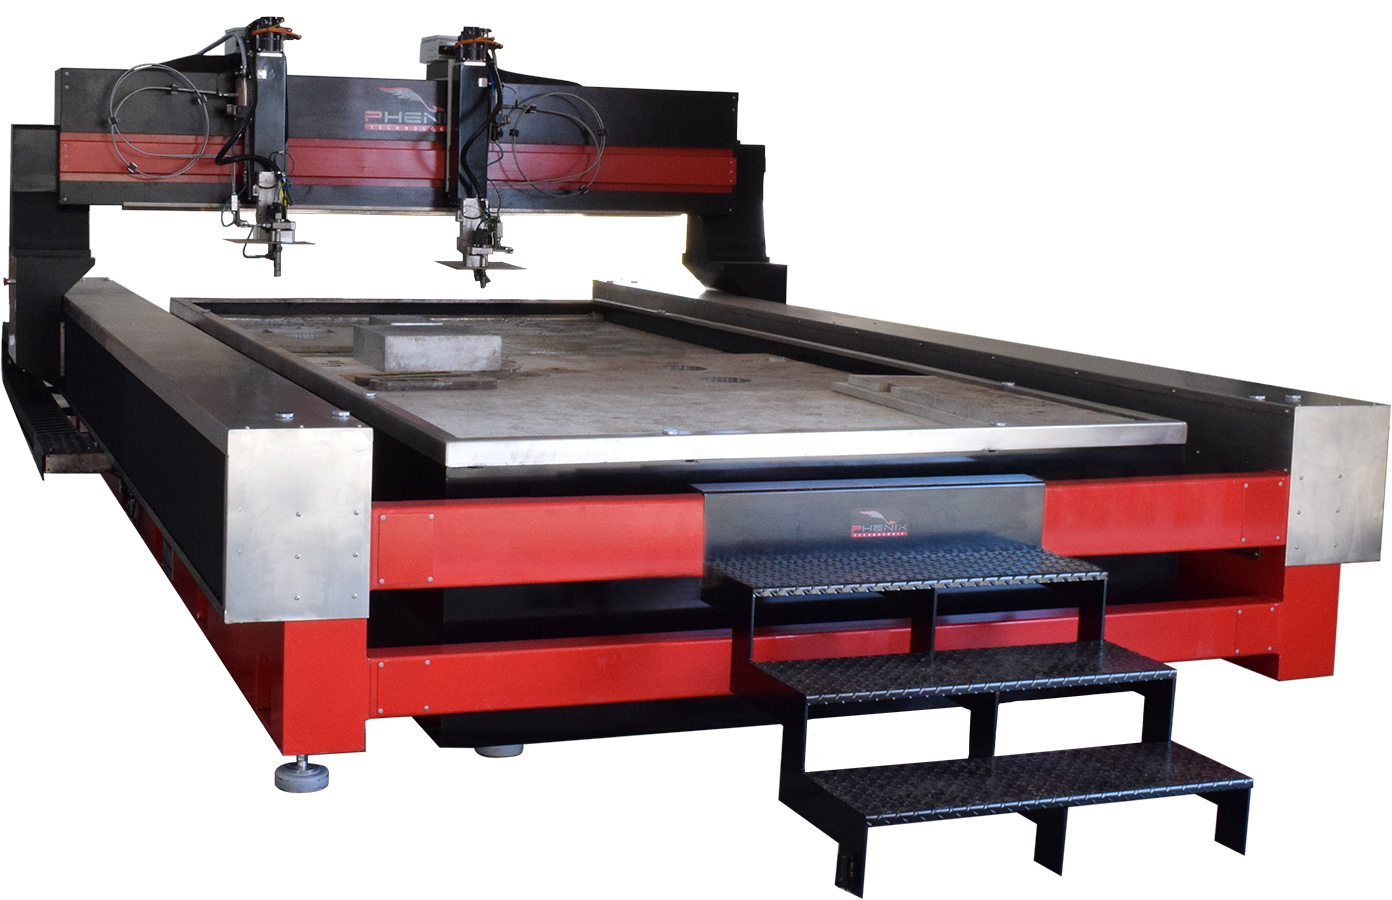 Pro Jet - PRO Jet water cutting table